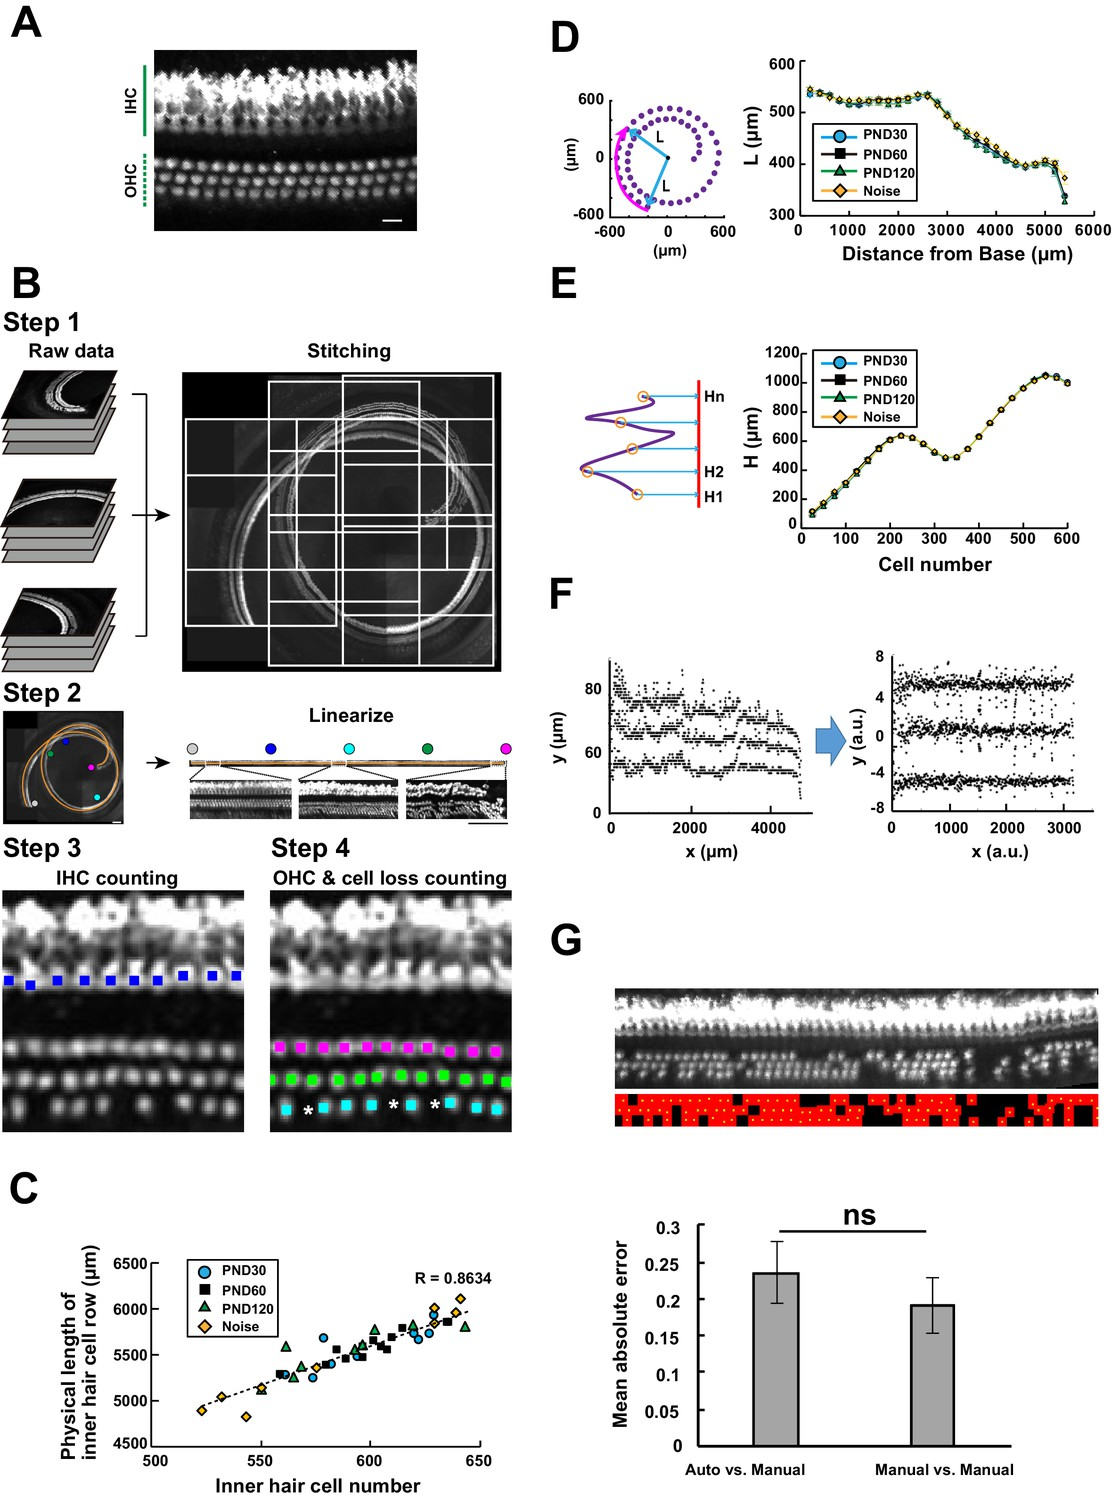 Cellular cartography of the organ of Corti based on optical tissue